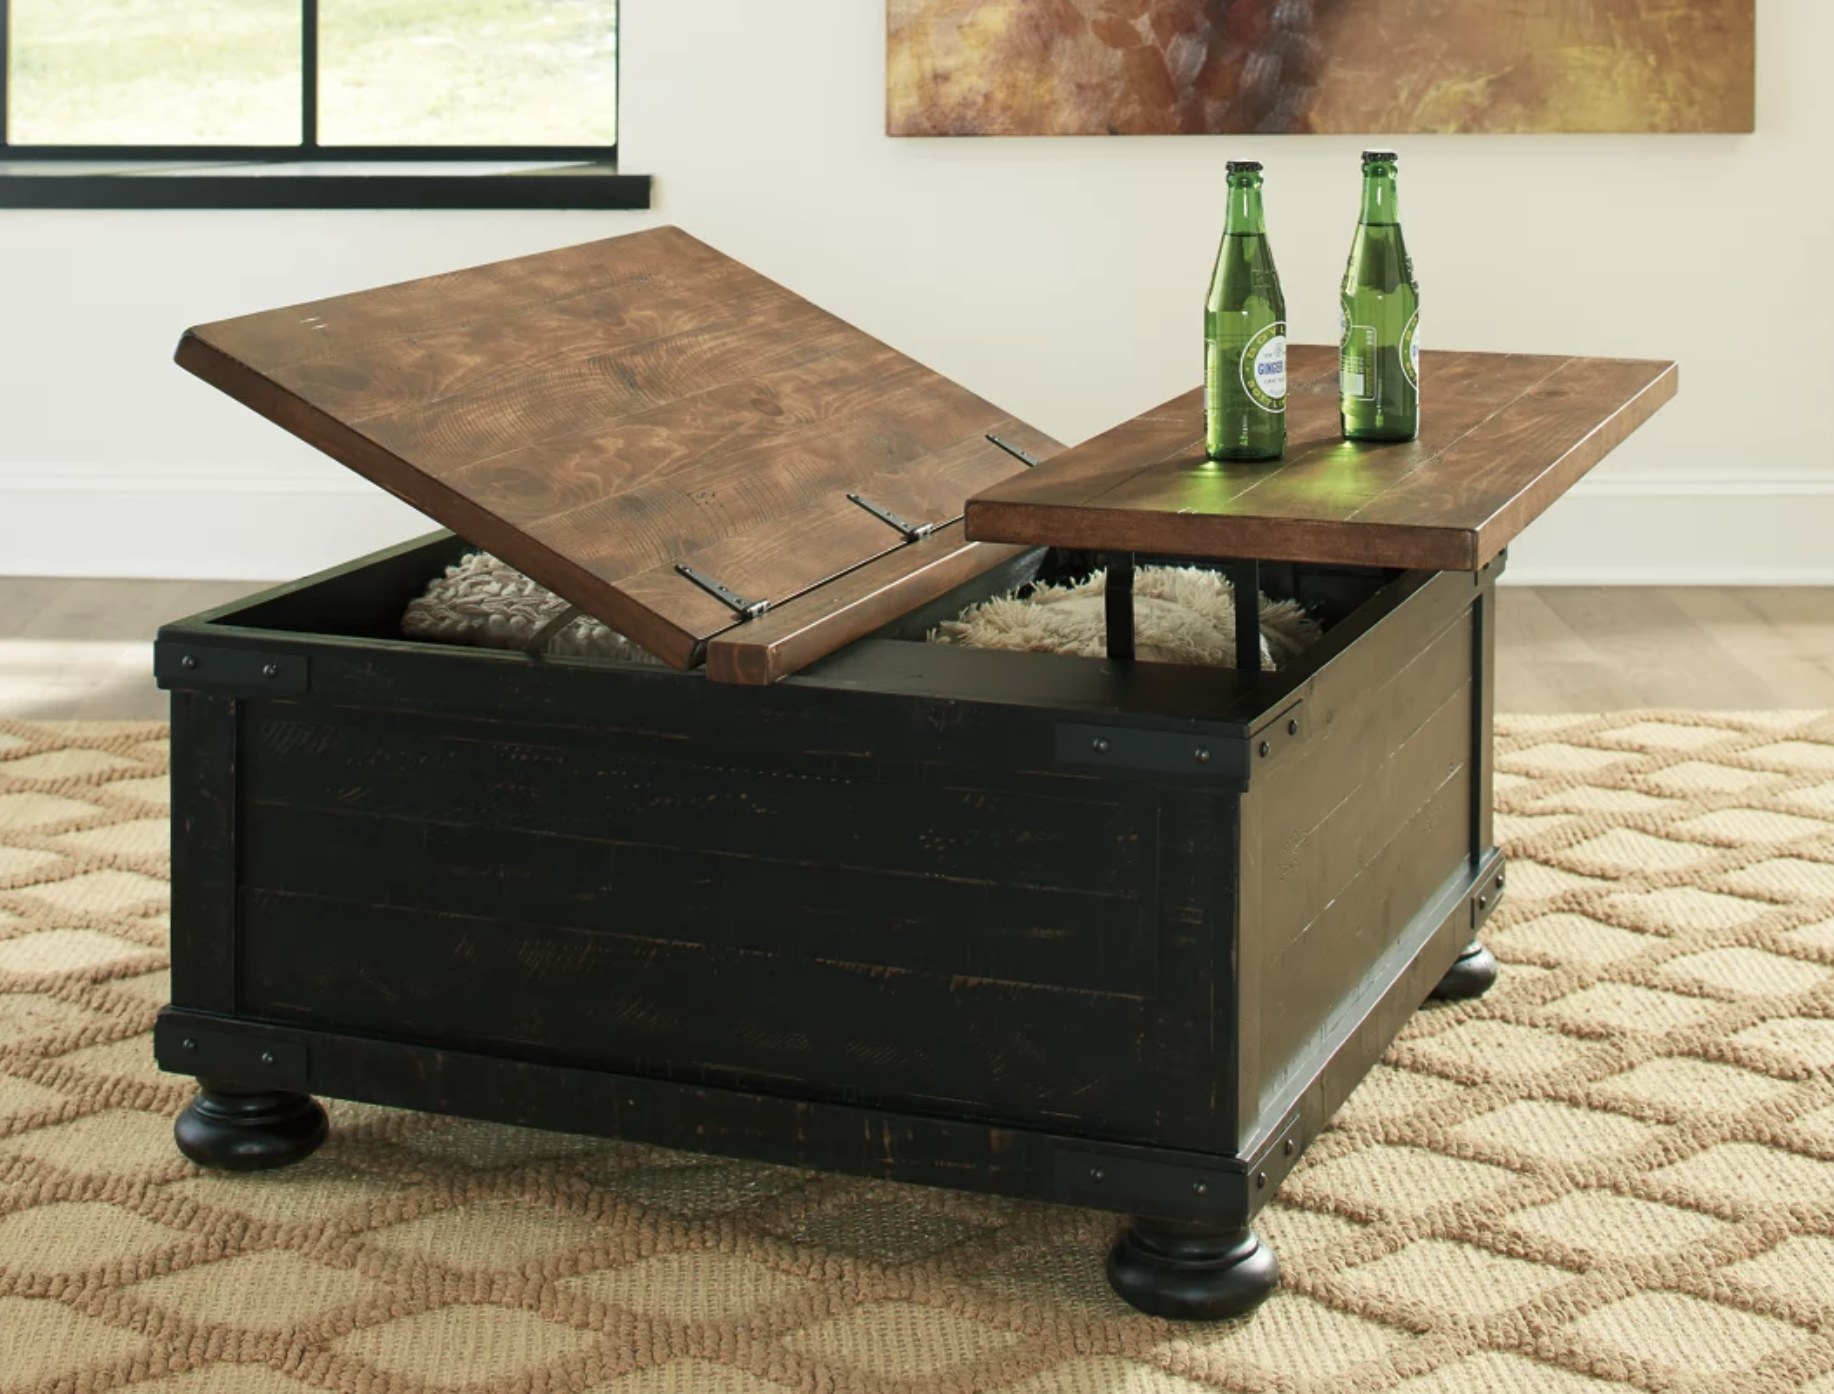 The black coffee table with lift top storage space